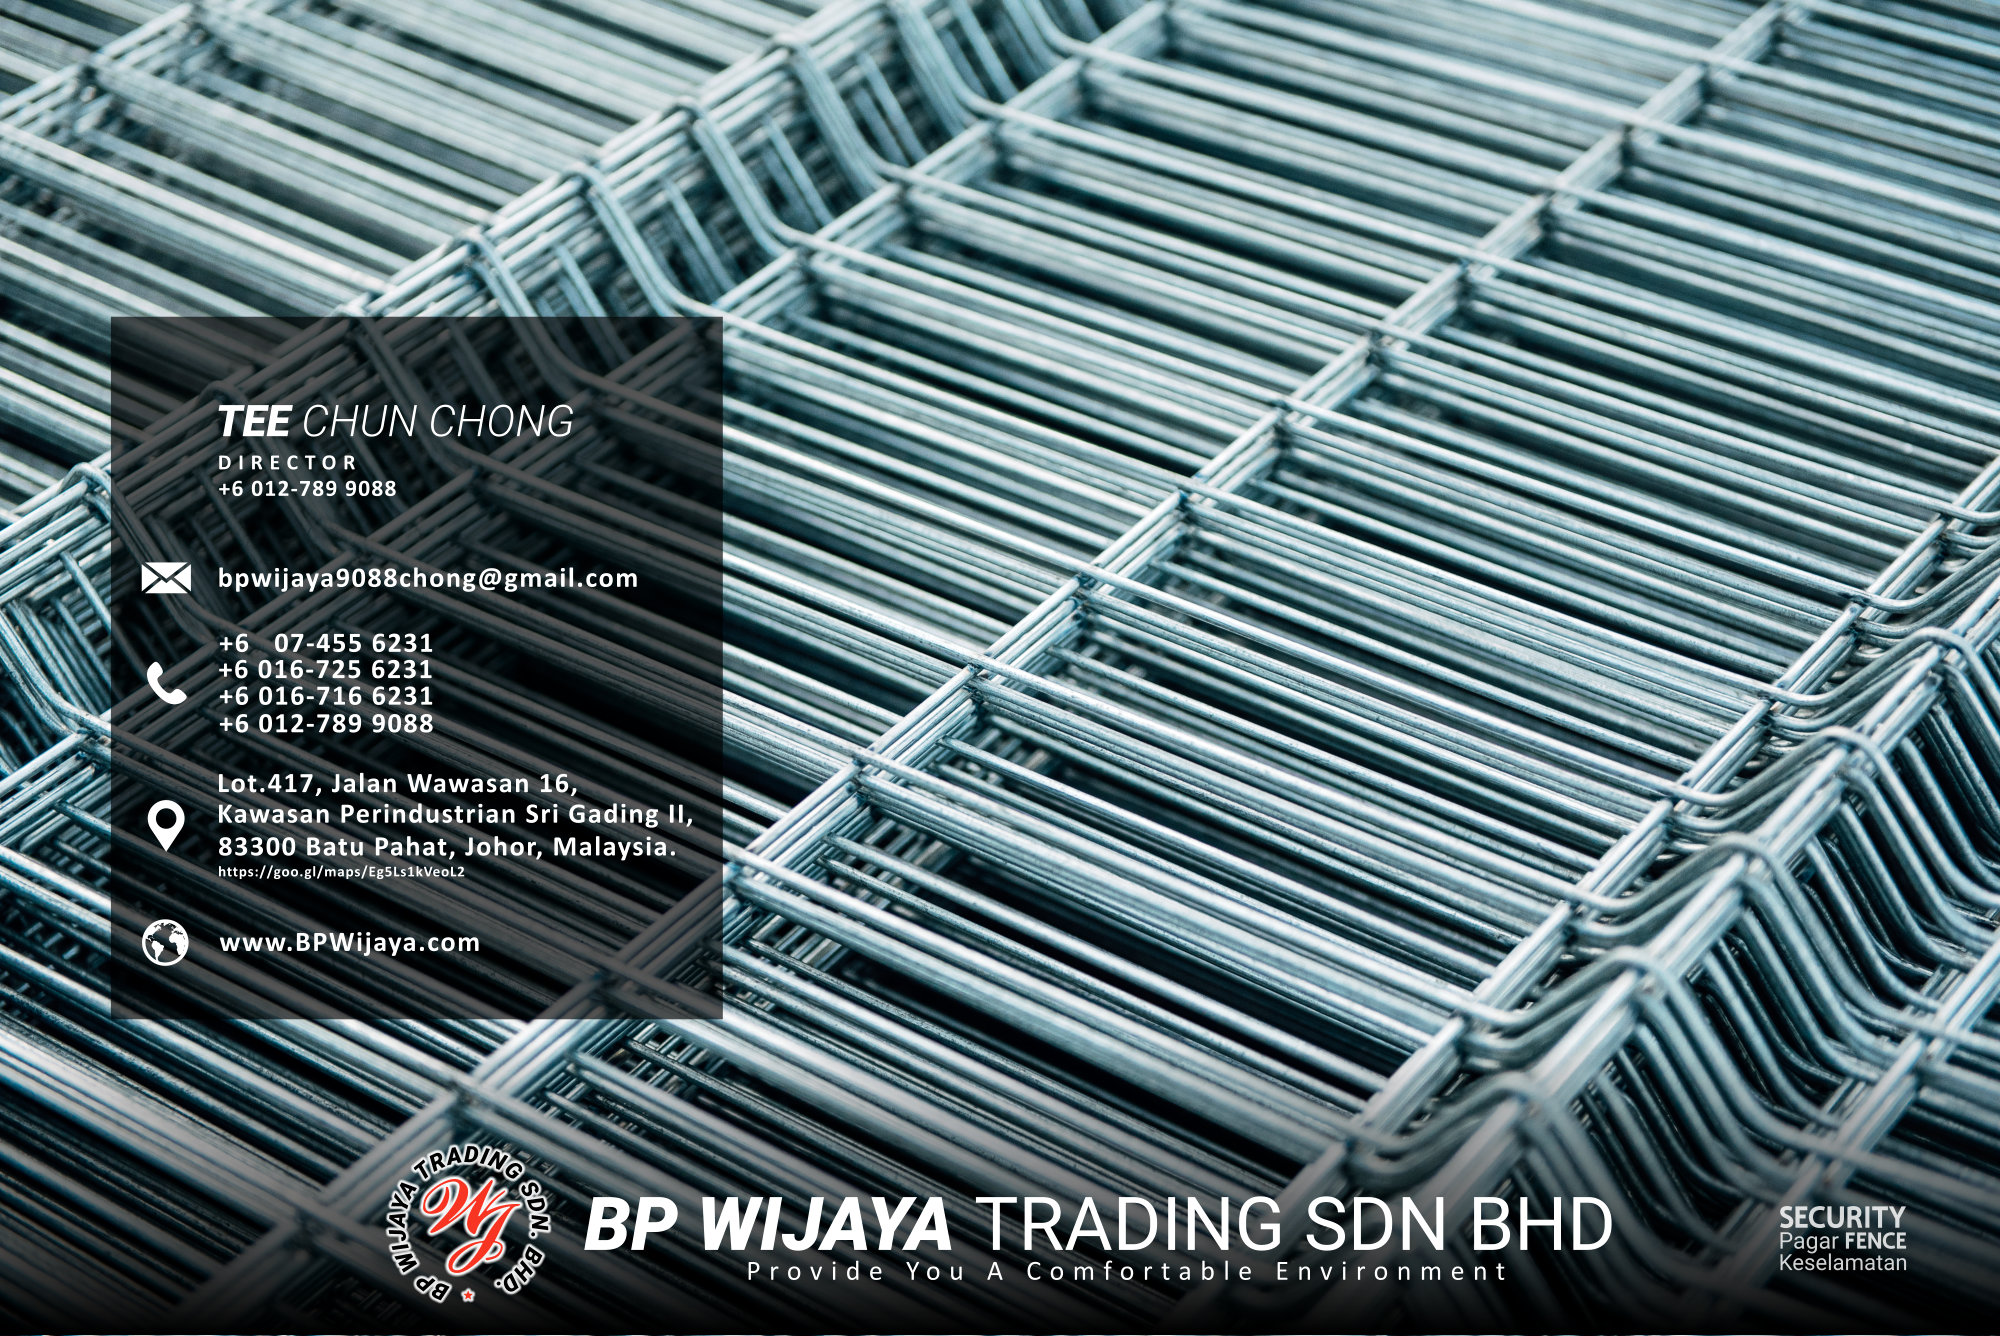 Kuala Lumpur Security Fence Supply we are manufacturer of security fence BP Wijaya Trading Sdn Bhd Safety Fence Building Materials for Housing Construction factory fence house beauty fence A03-013